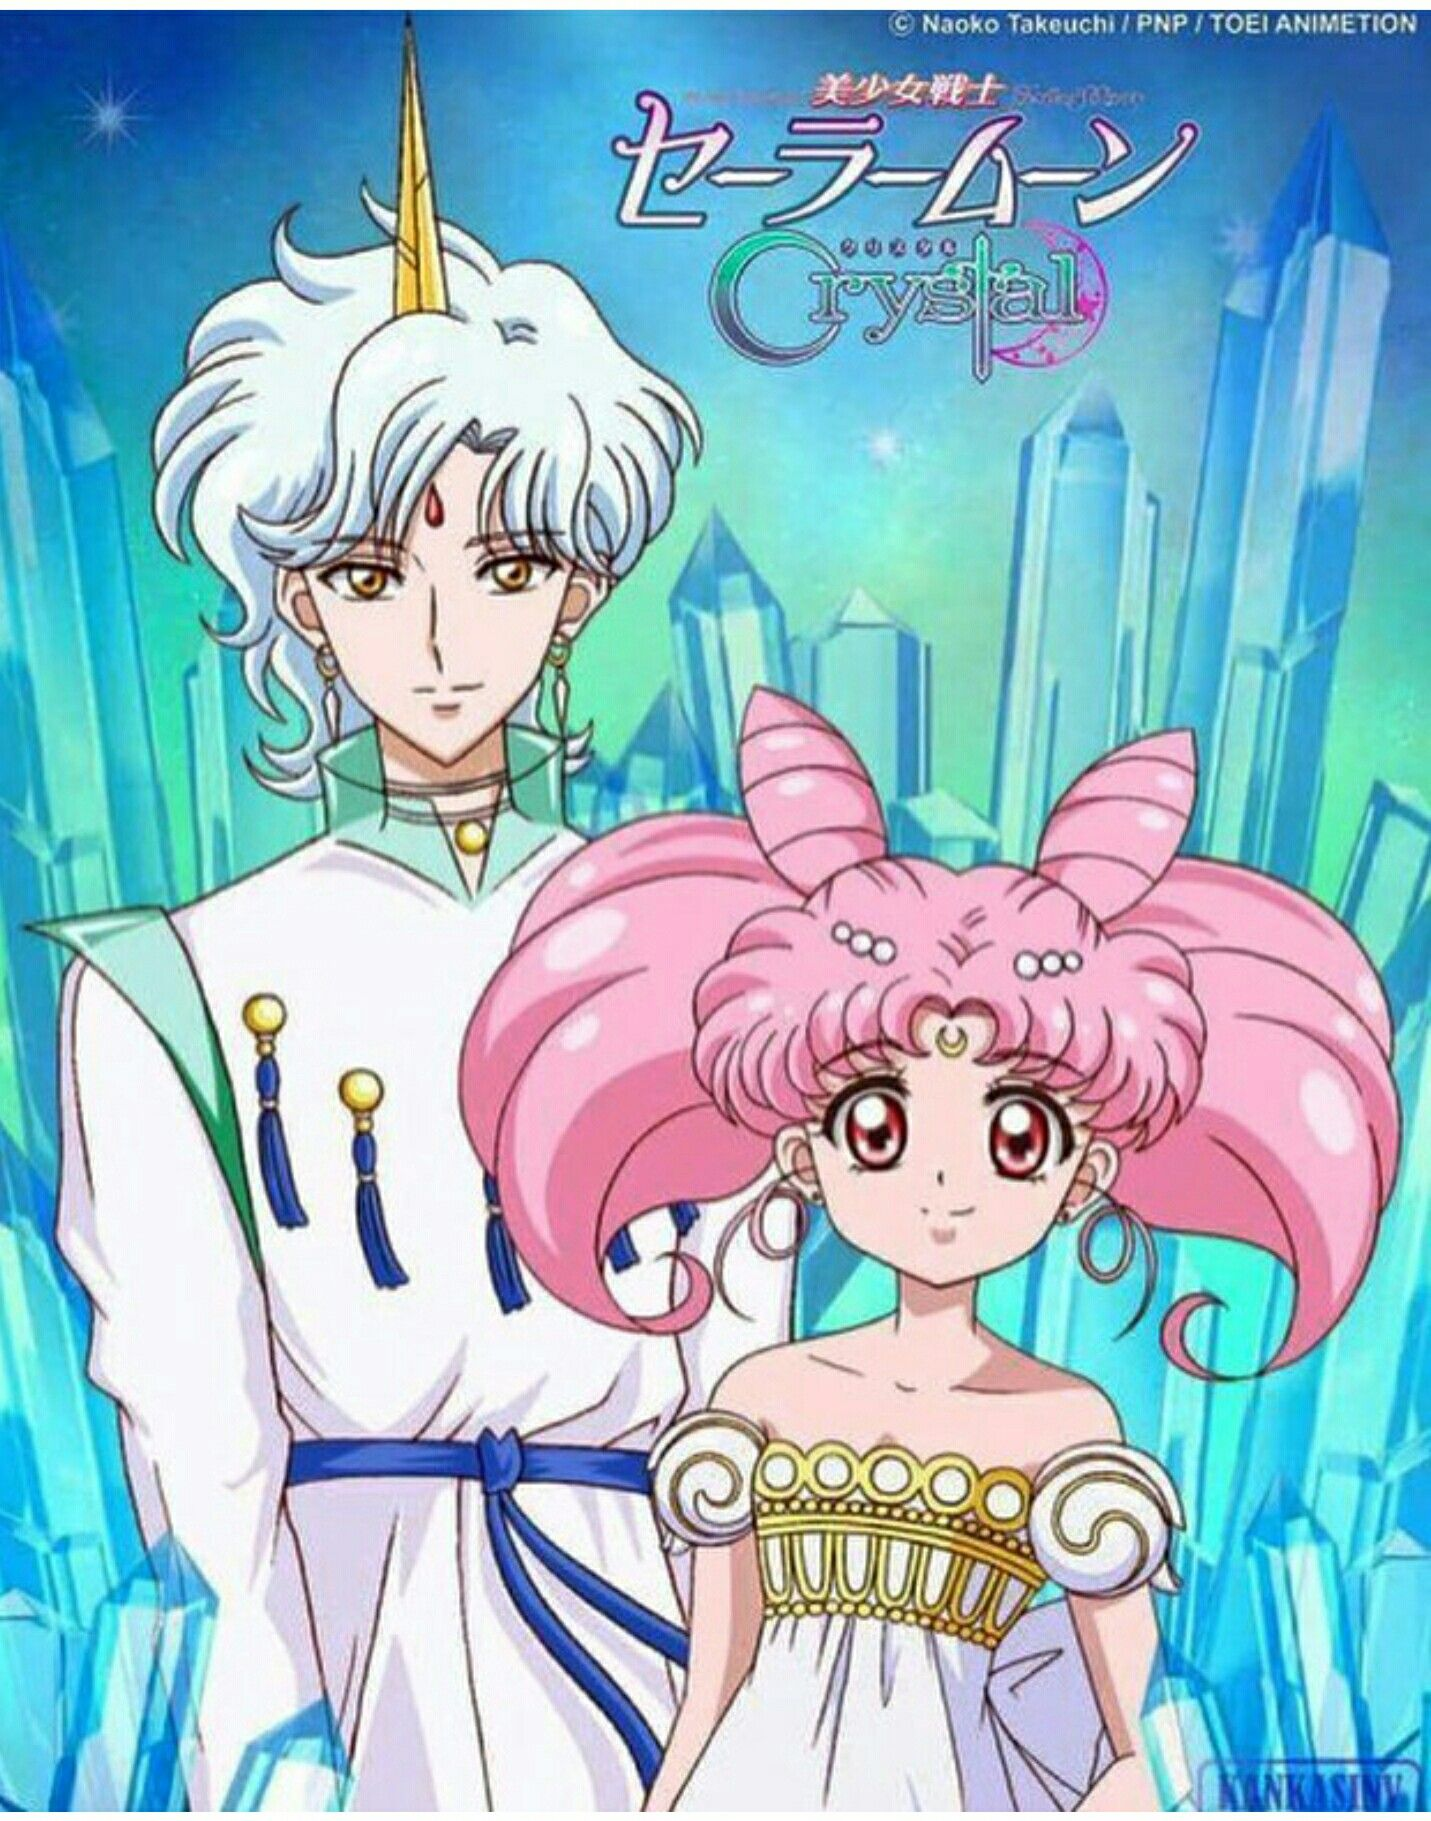 Ahhh, my favorite ship in Sailor Moon. I can\'t wait to see Helios ...